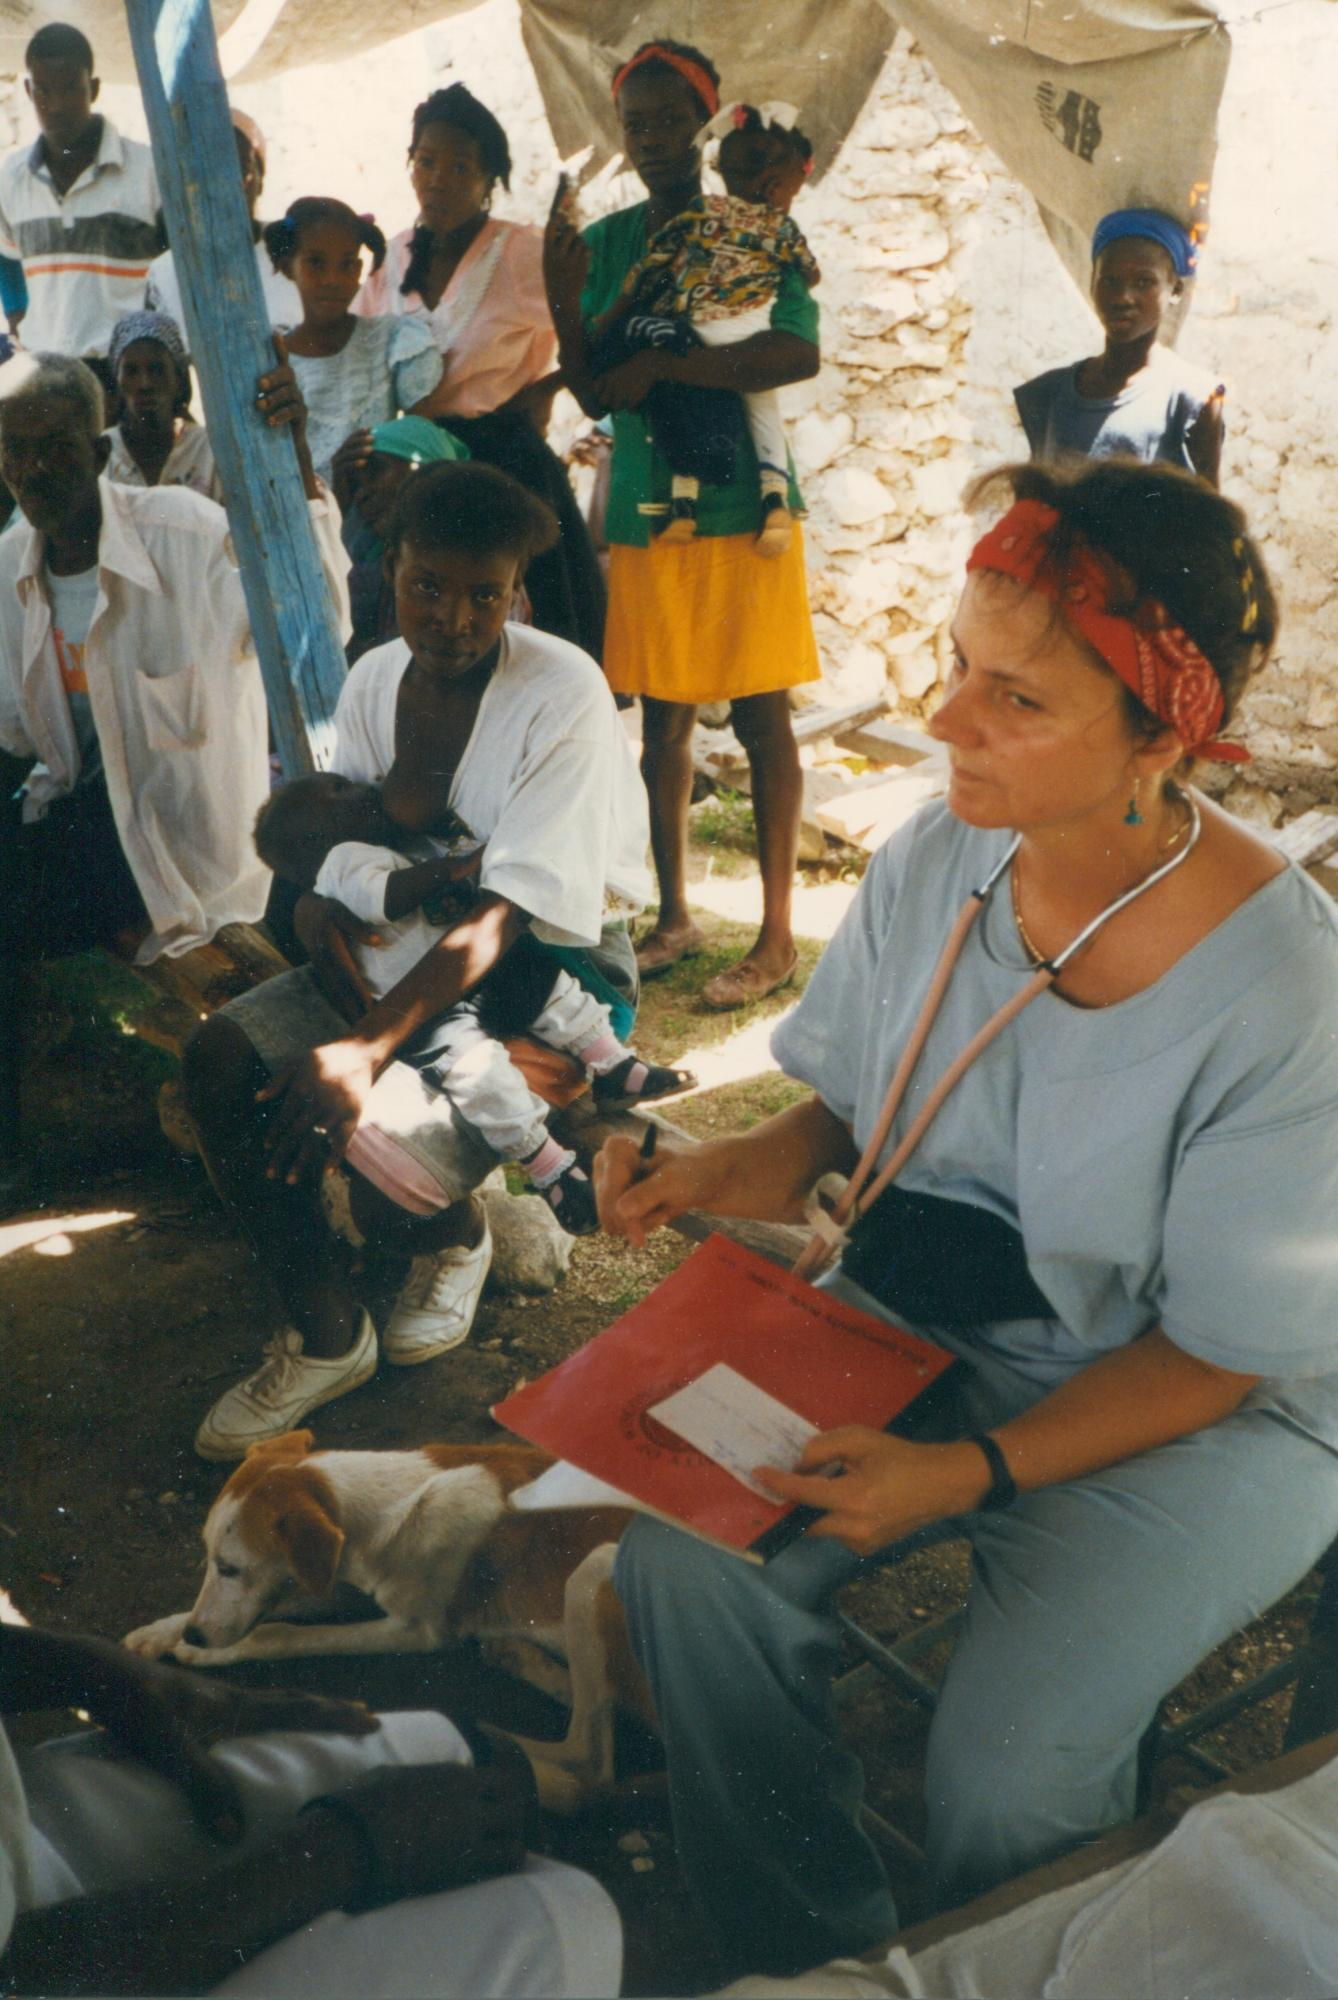 Team_members_in_temp_clinic_tent_w_patients_June_1997_image89.jpg